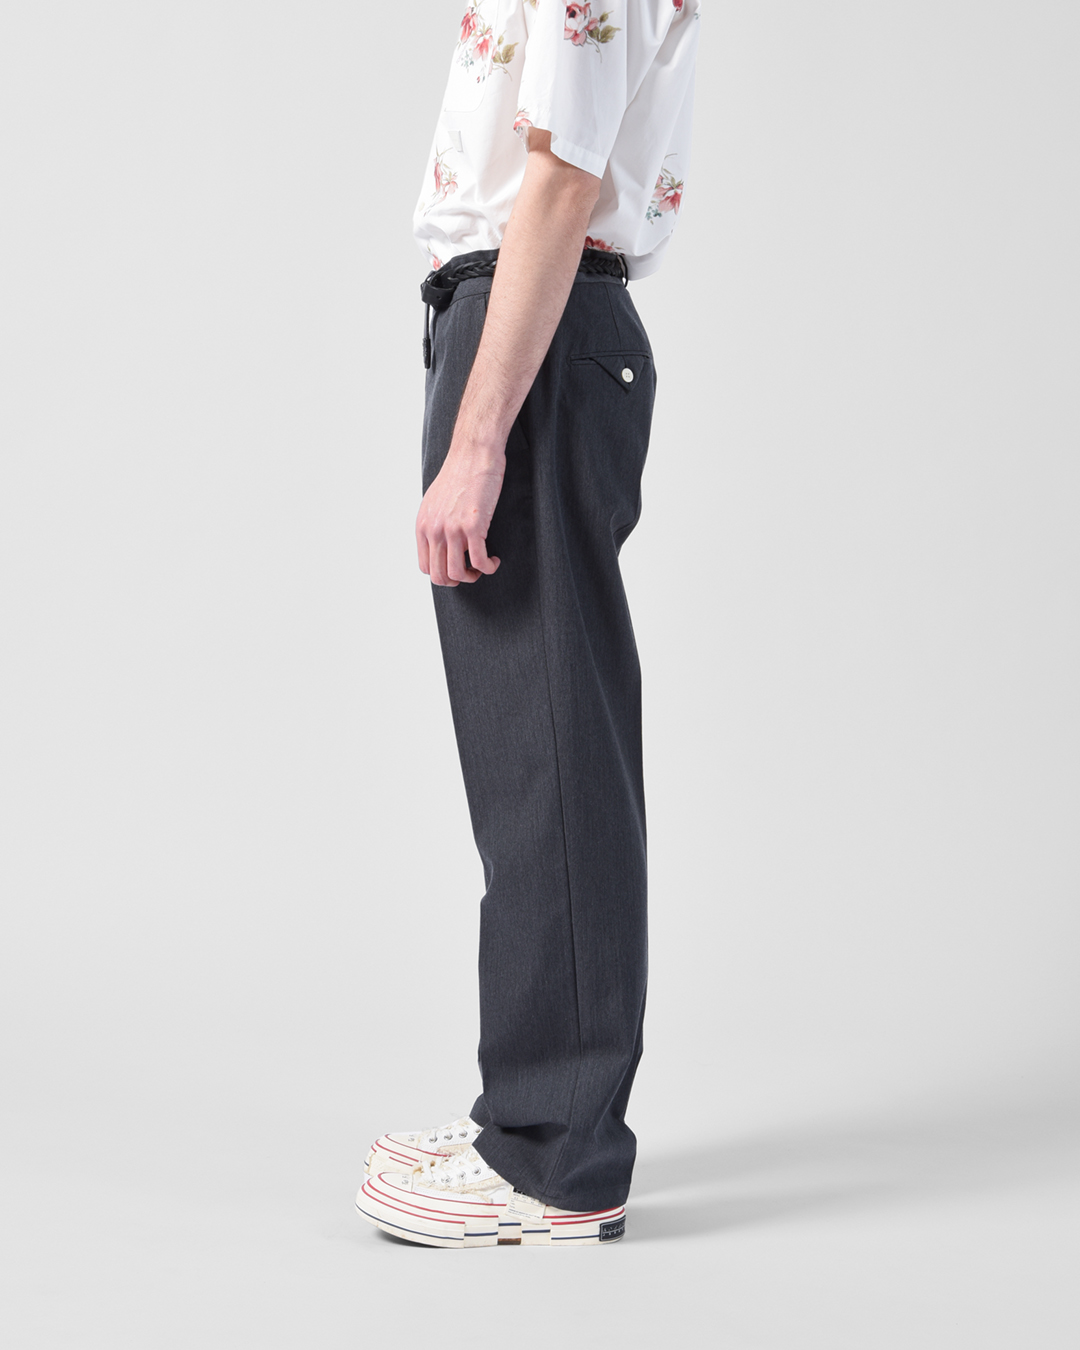 WORK TROUSERS 詳細画像 Navy 8